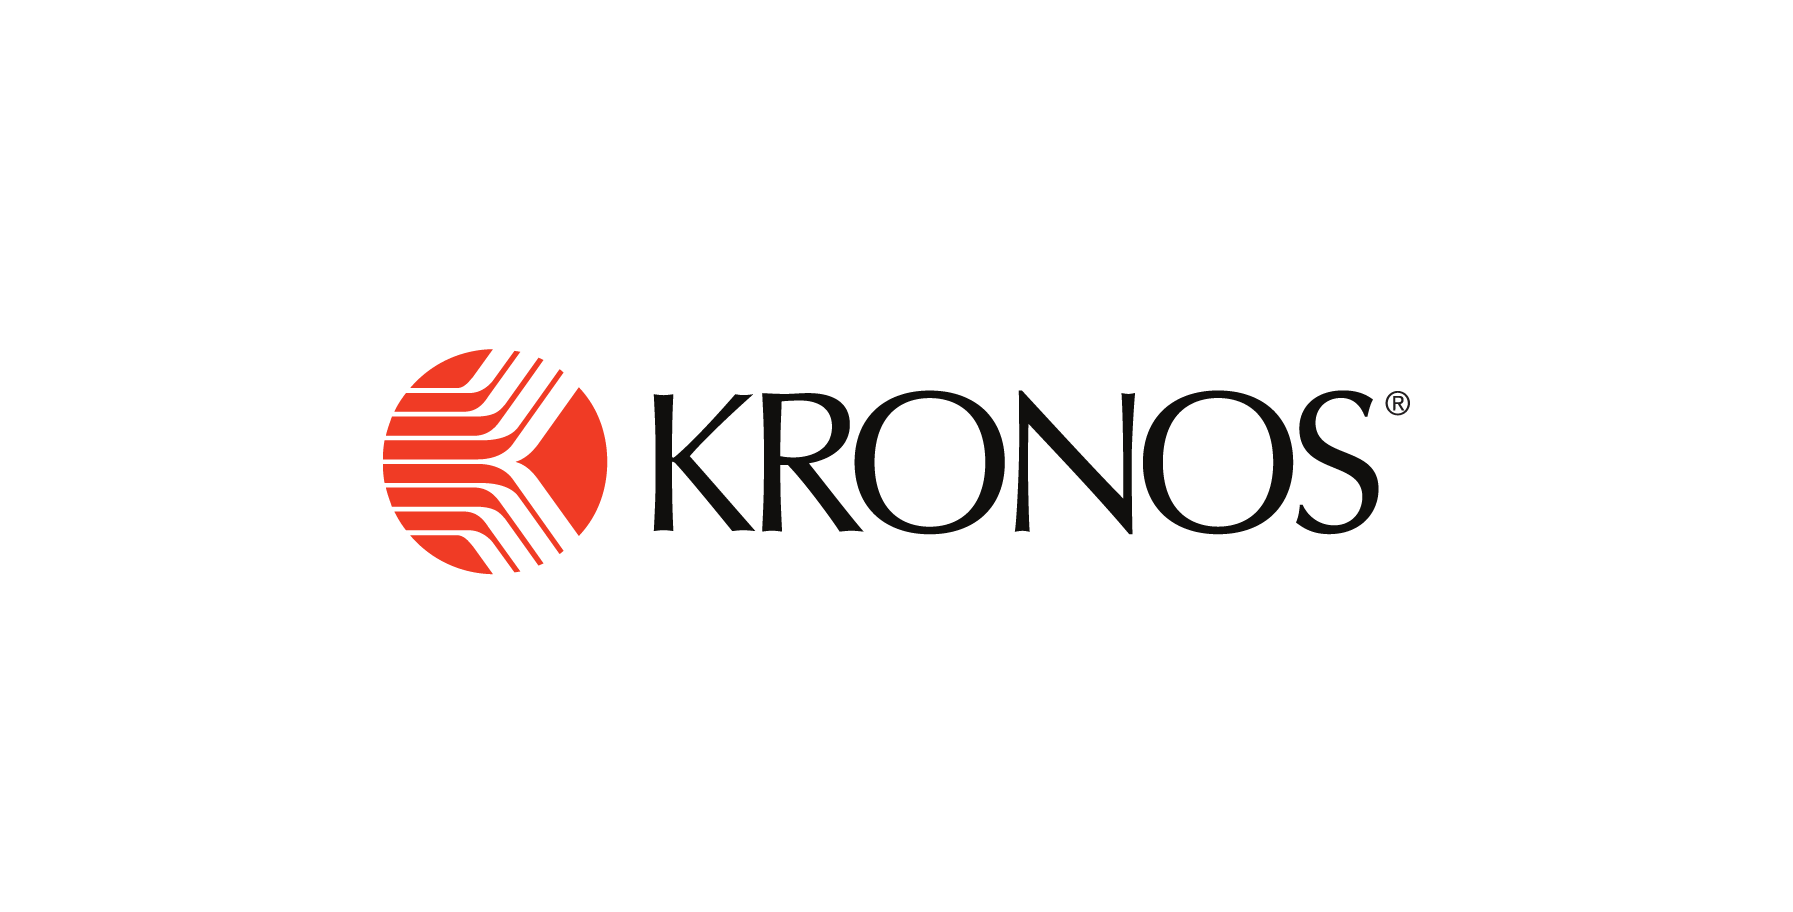 Kronos Logo spaced